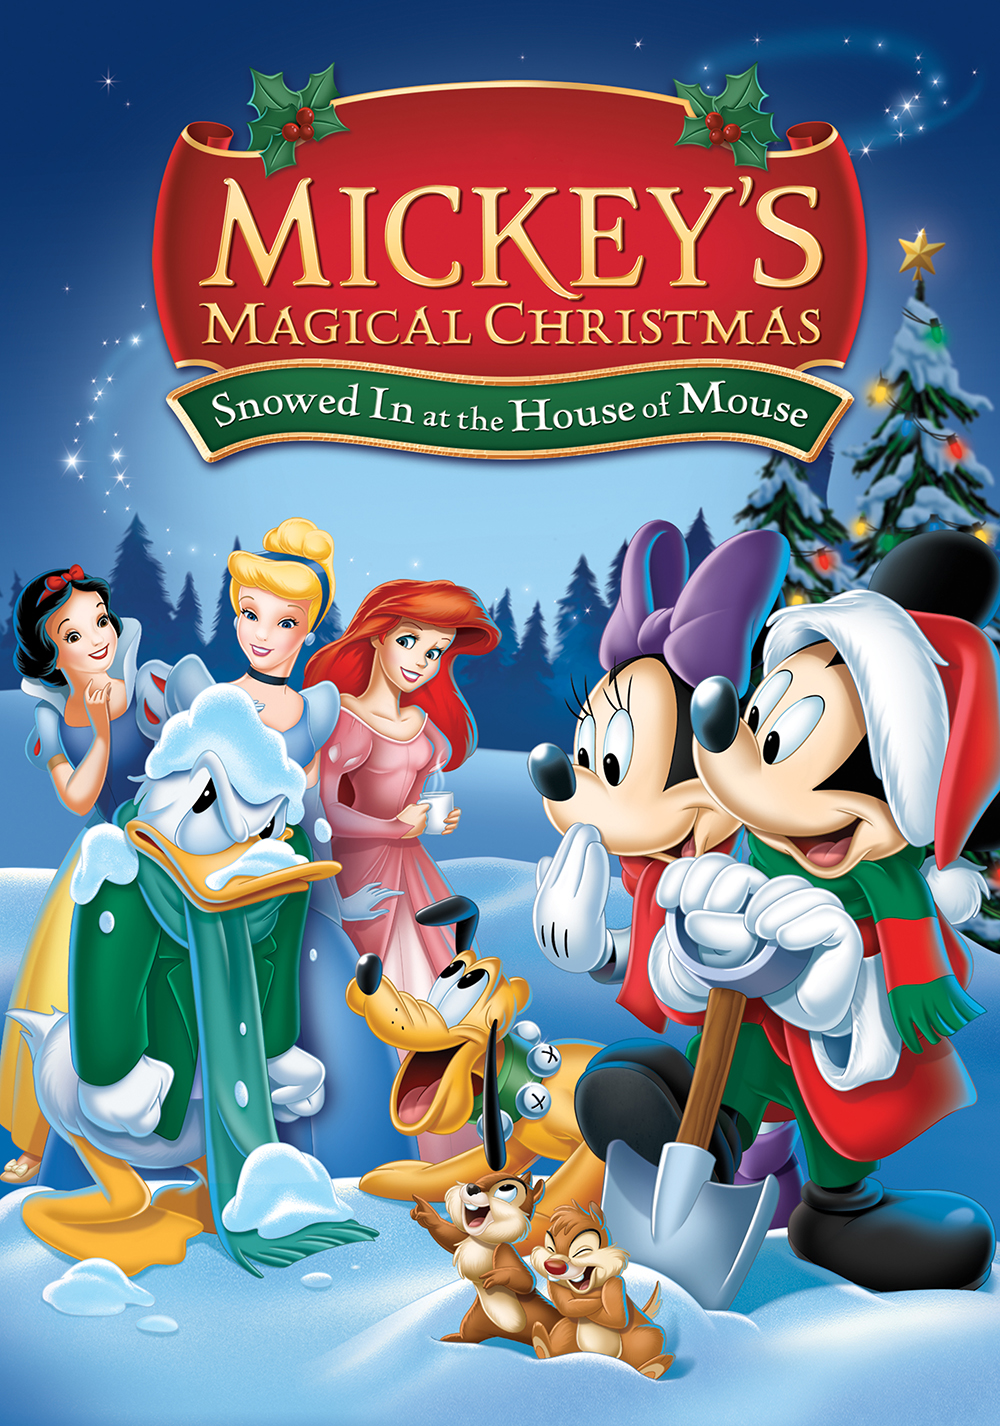 mickeys-magical-christmas-snowed-in-at-the-house-of-mouse-526315efb9ed8.jpg